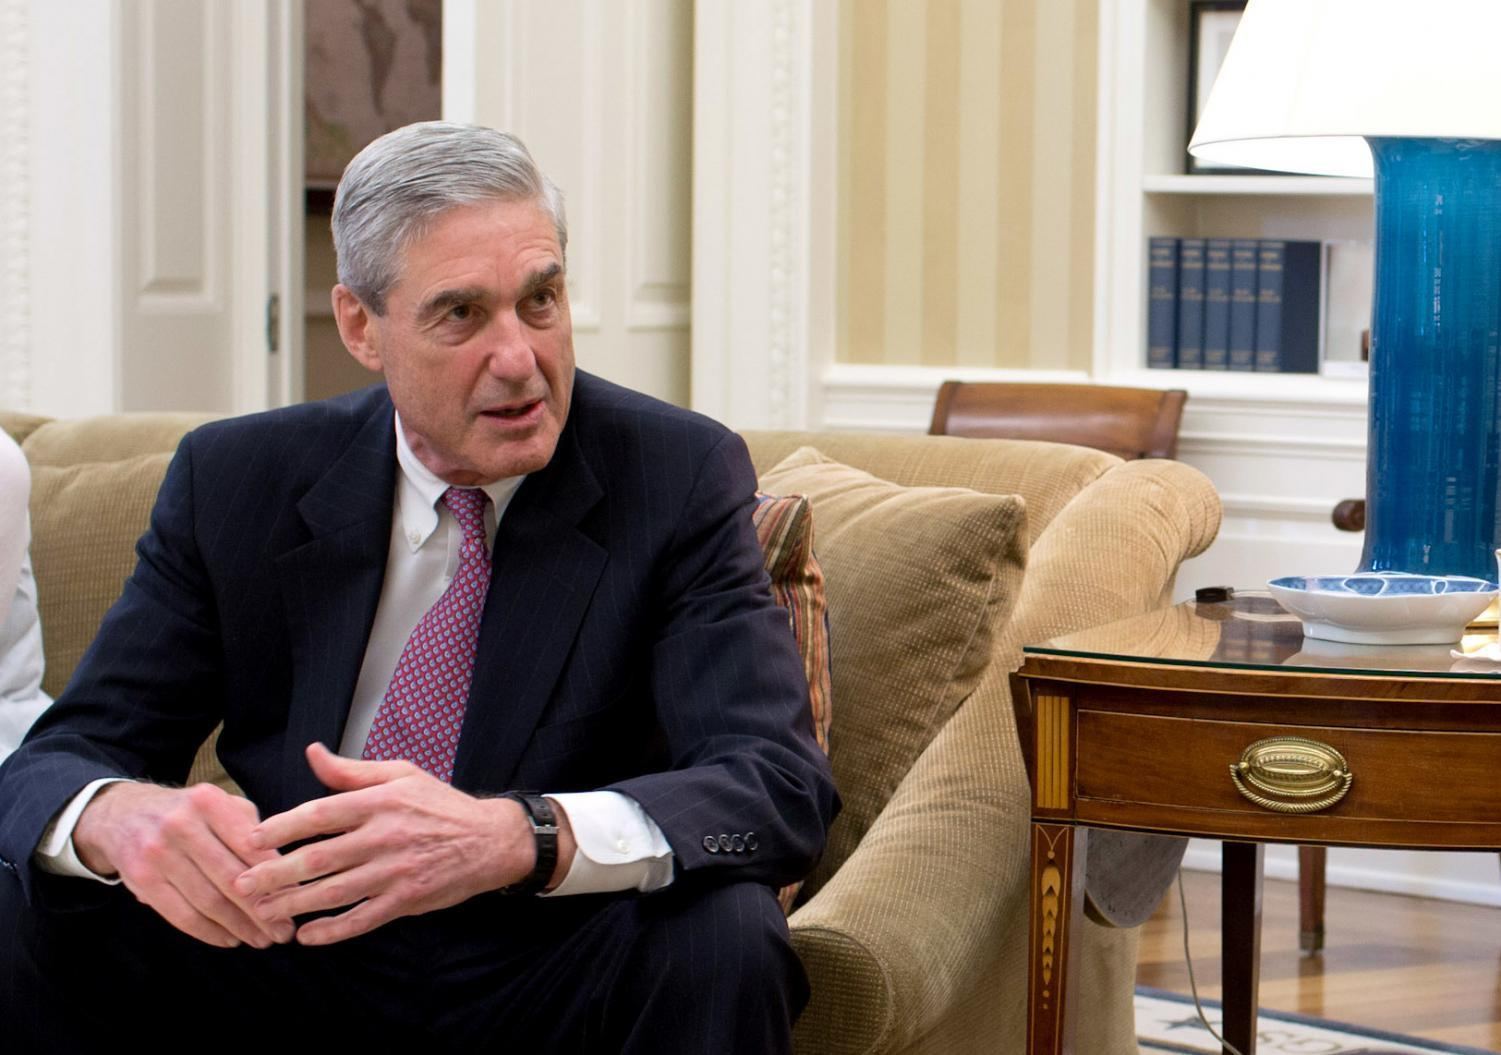 Special Counsel Robert Mueller was named Special Counsel to investigate supposed Russian meddling in the 2016 election shortly after Comey's firing. Photo permission from Wikimedia Commons.